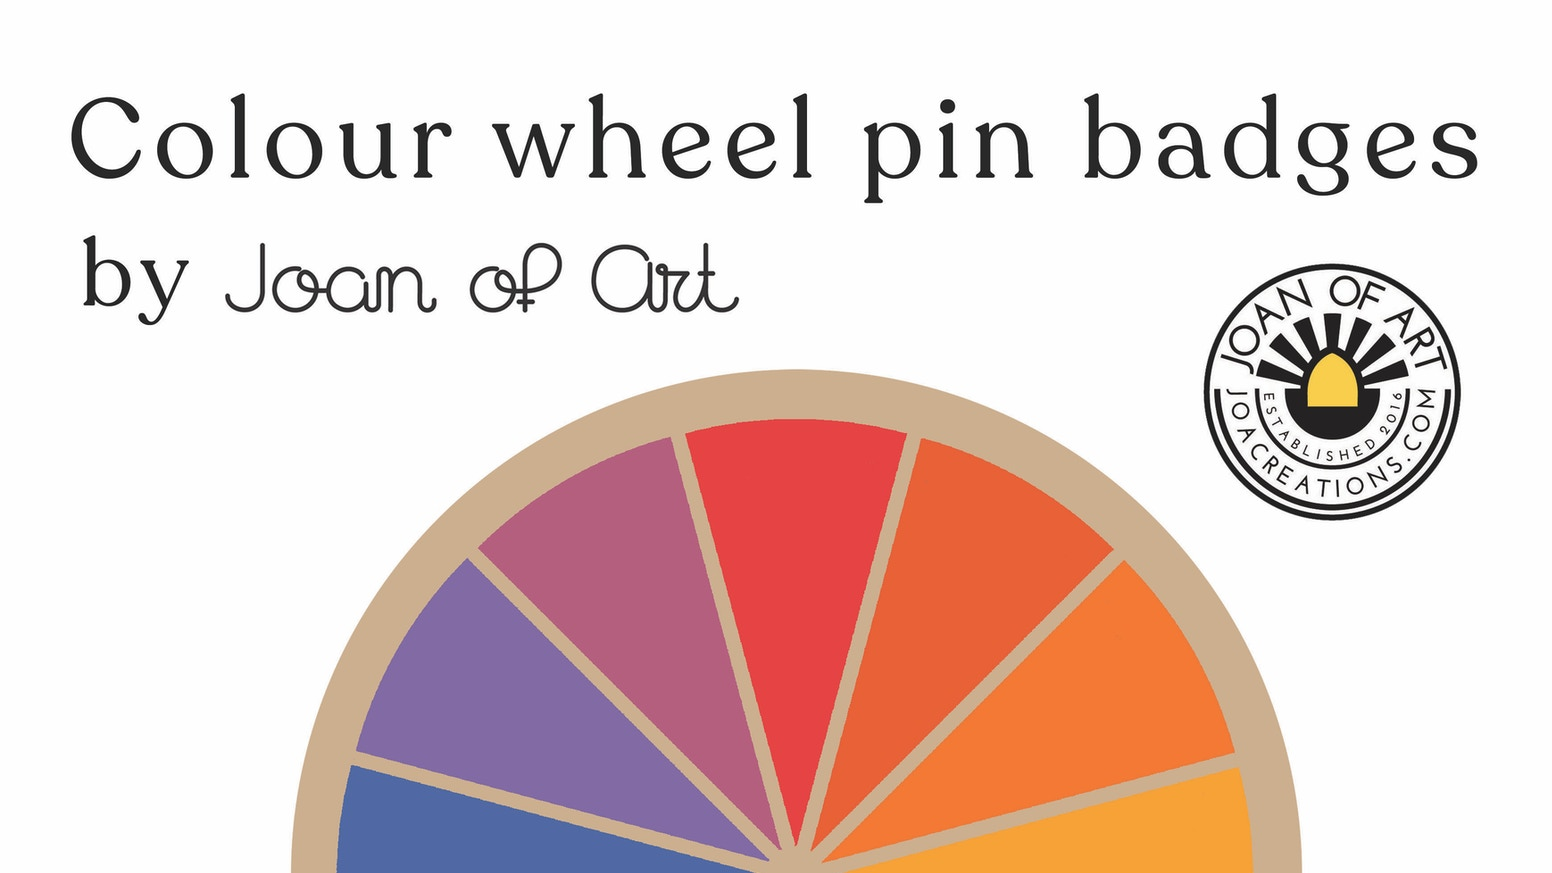 A wearable pin badge featuring  a colour wheel design - Coming soon!